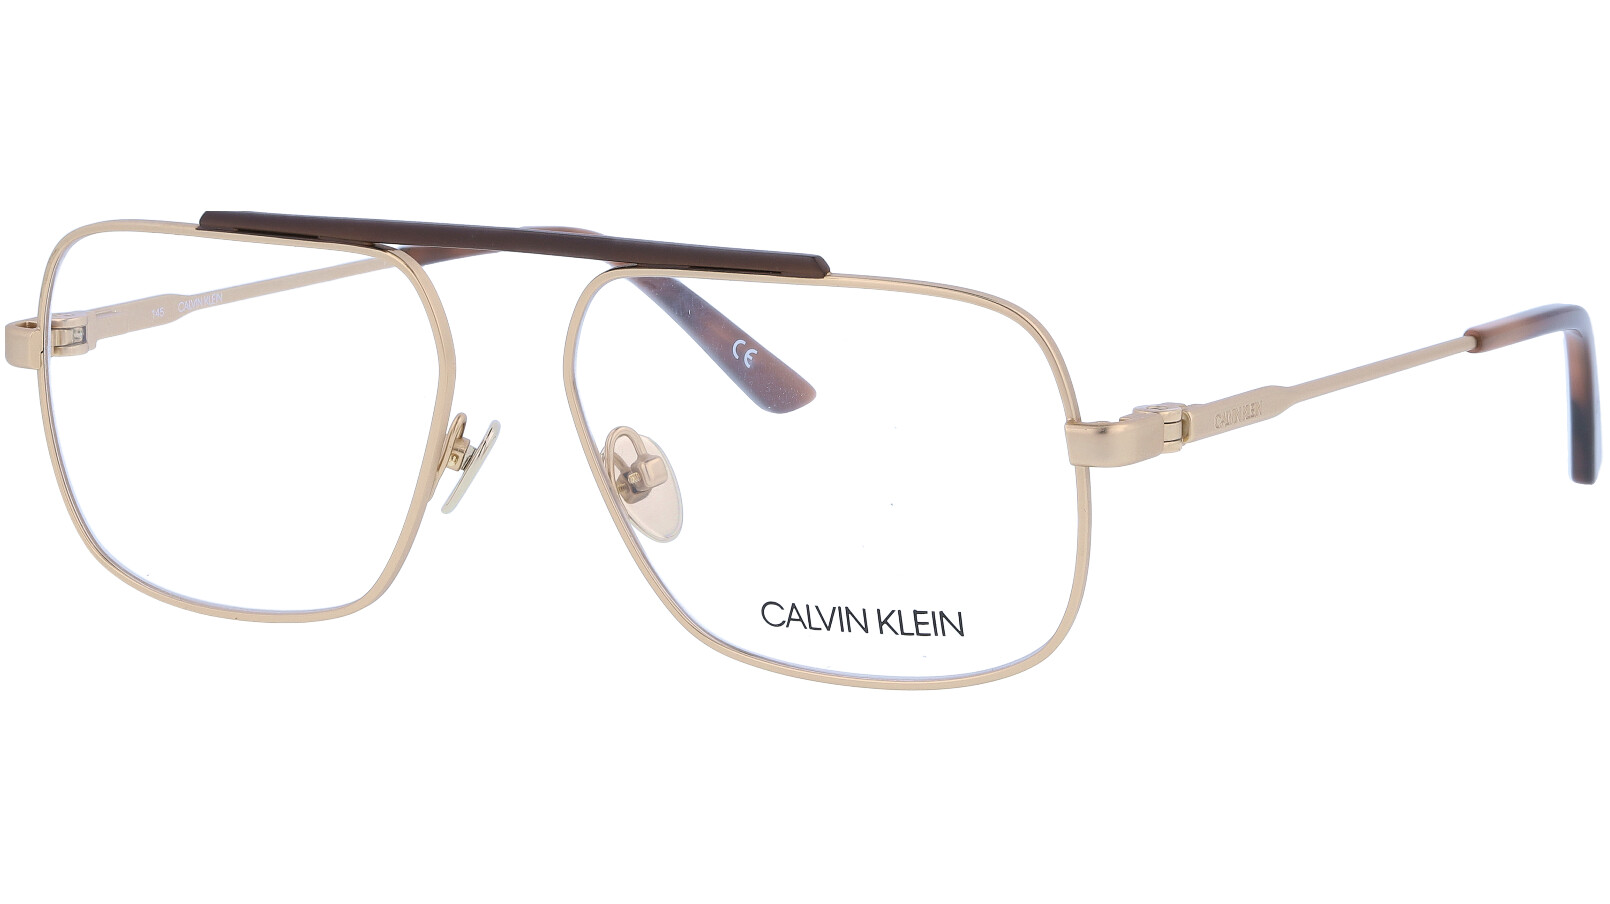 CALVIN KLEIN CK18106 717 55  GOLDEN Glasses